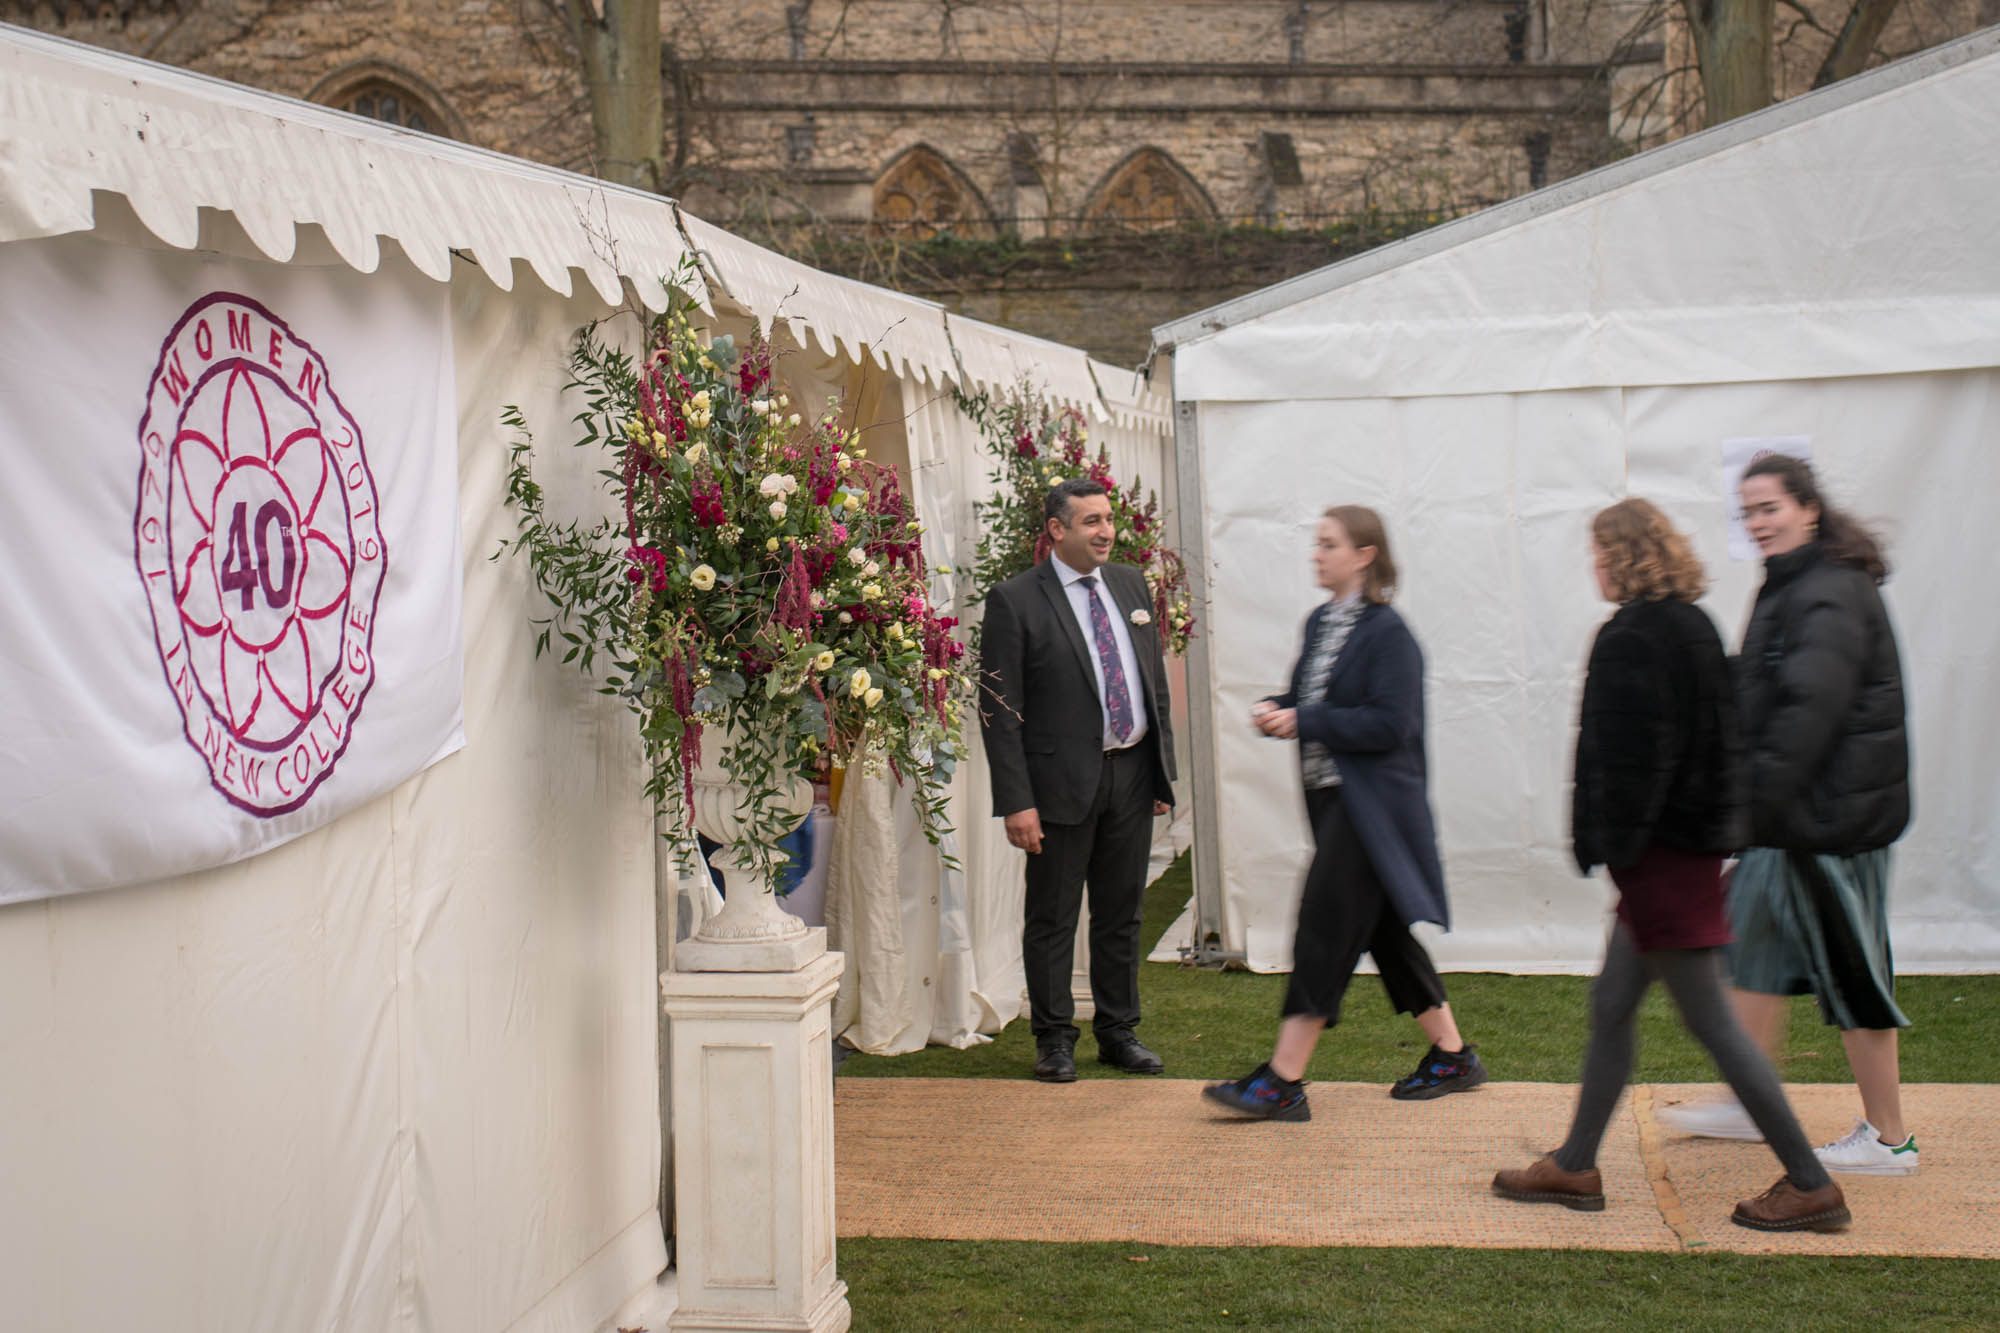 Attendees enter the marquee in the Gardens